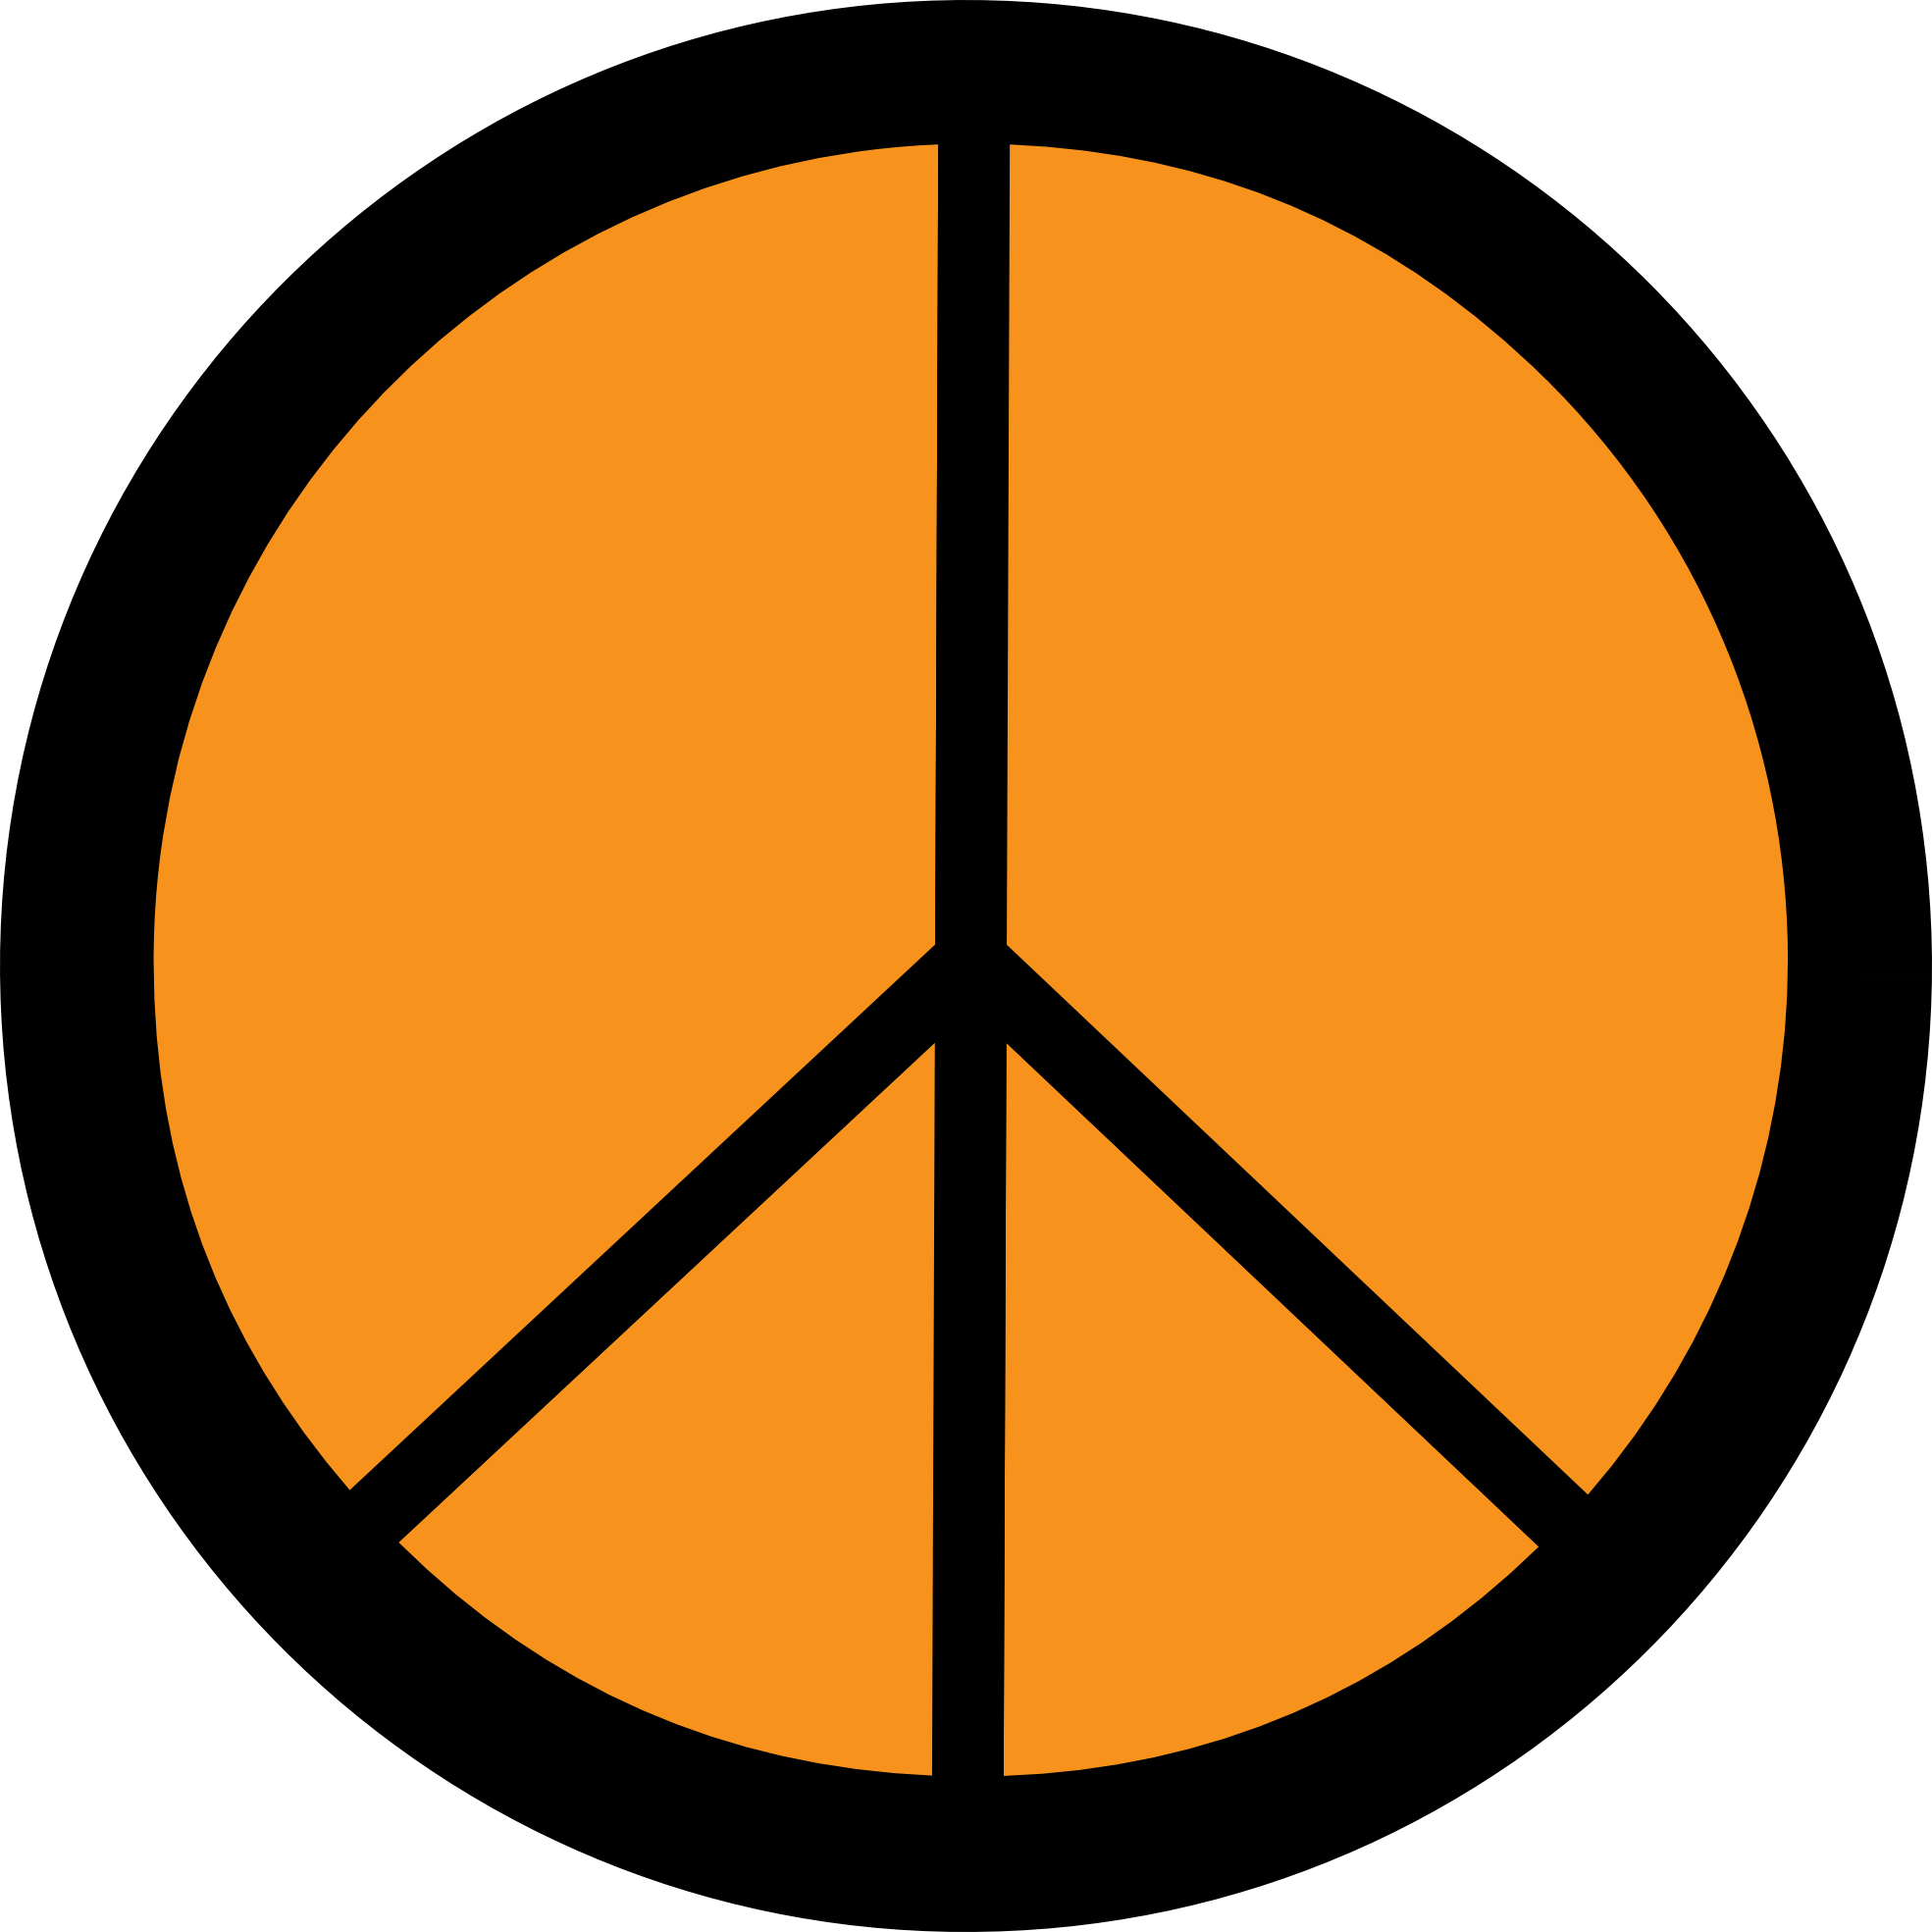 Peace sign peace clipart free download clip art on